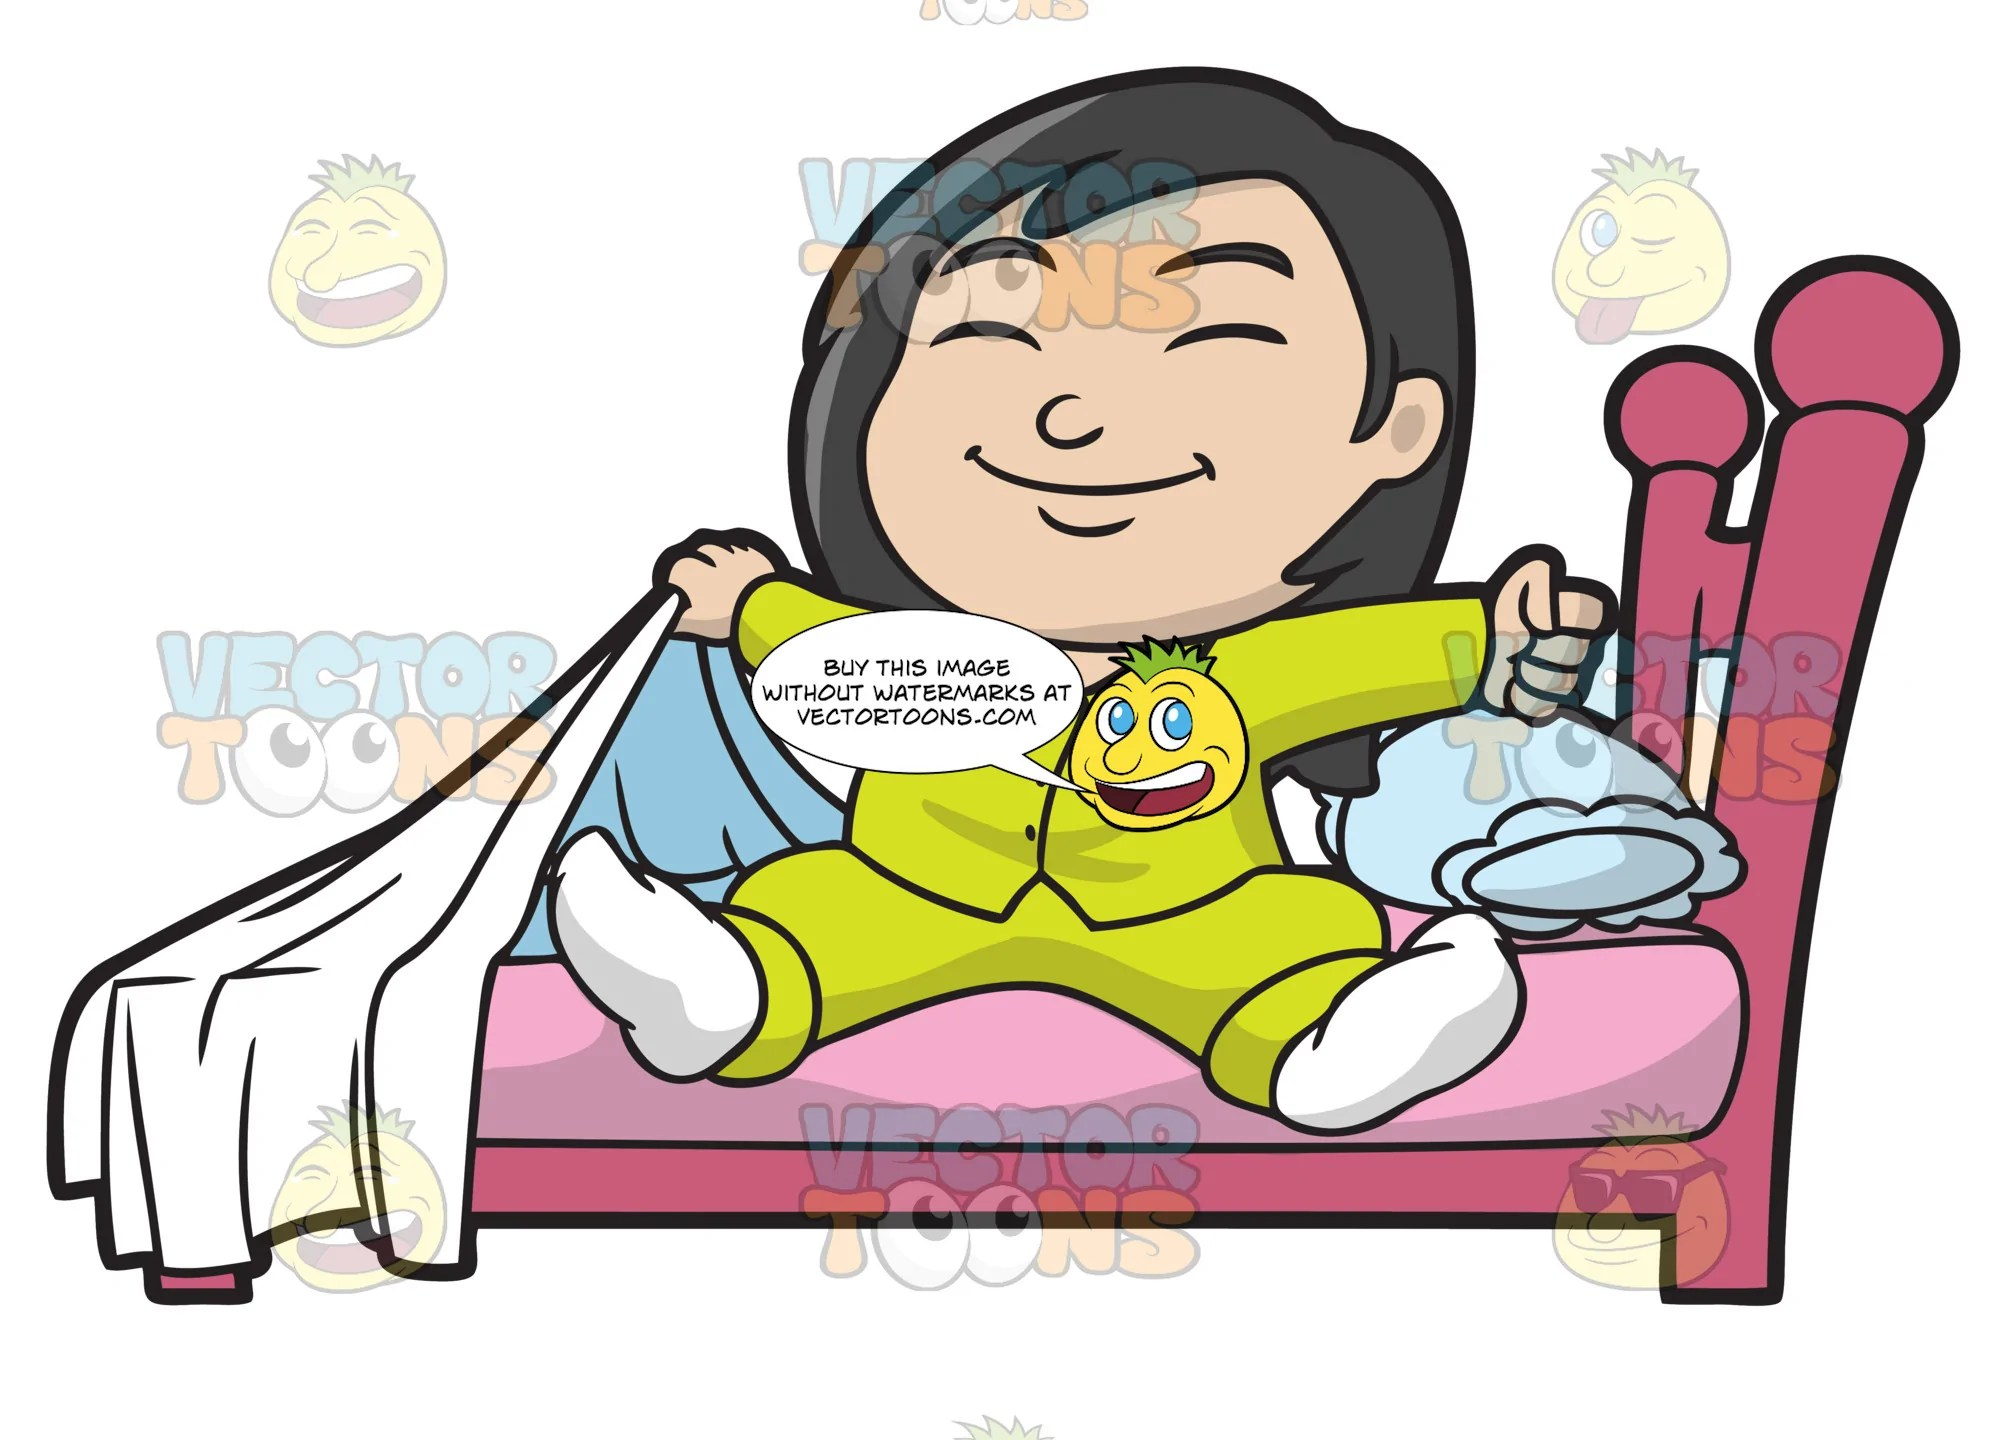 small resolution of a happy girl stretches her body upon waking up clipart cartoons by vectortoons